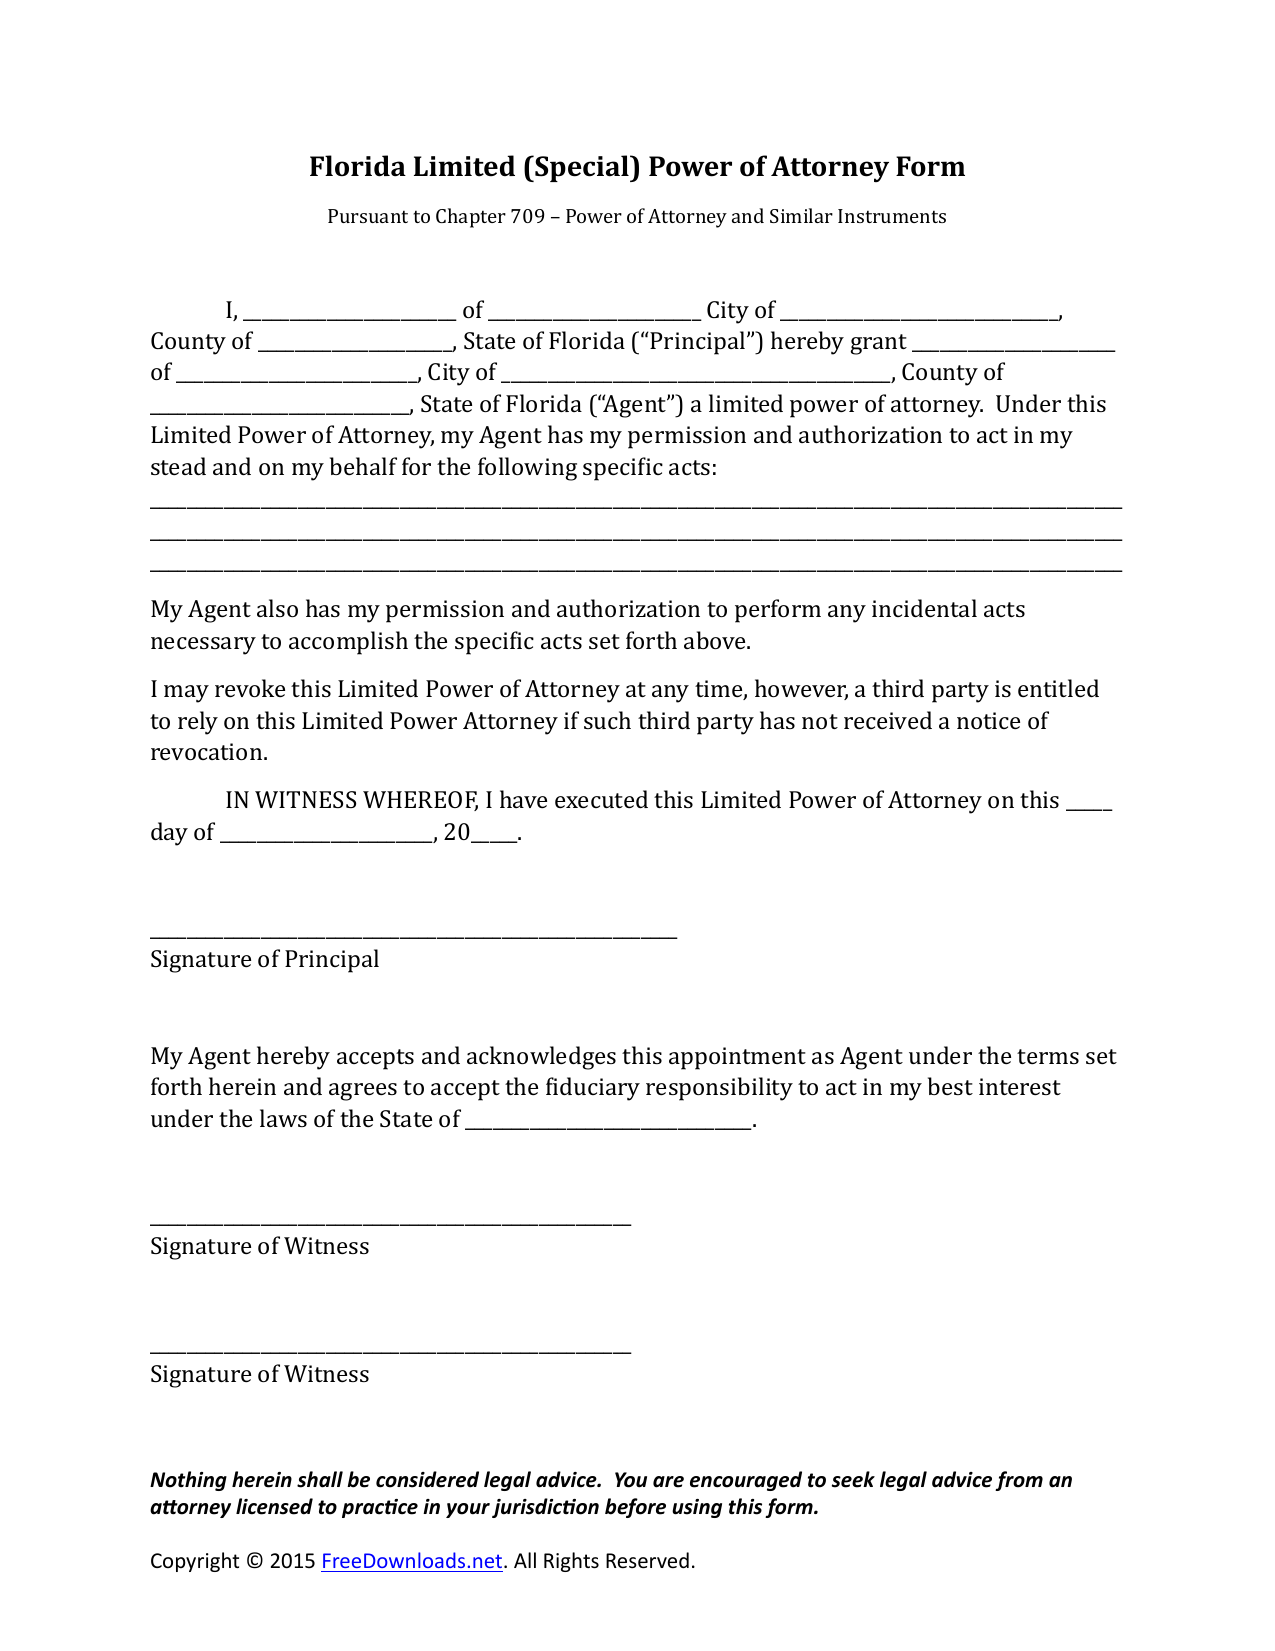 special power of attorney template free - download florida special limited power of attorney form